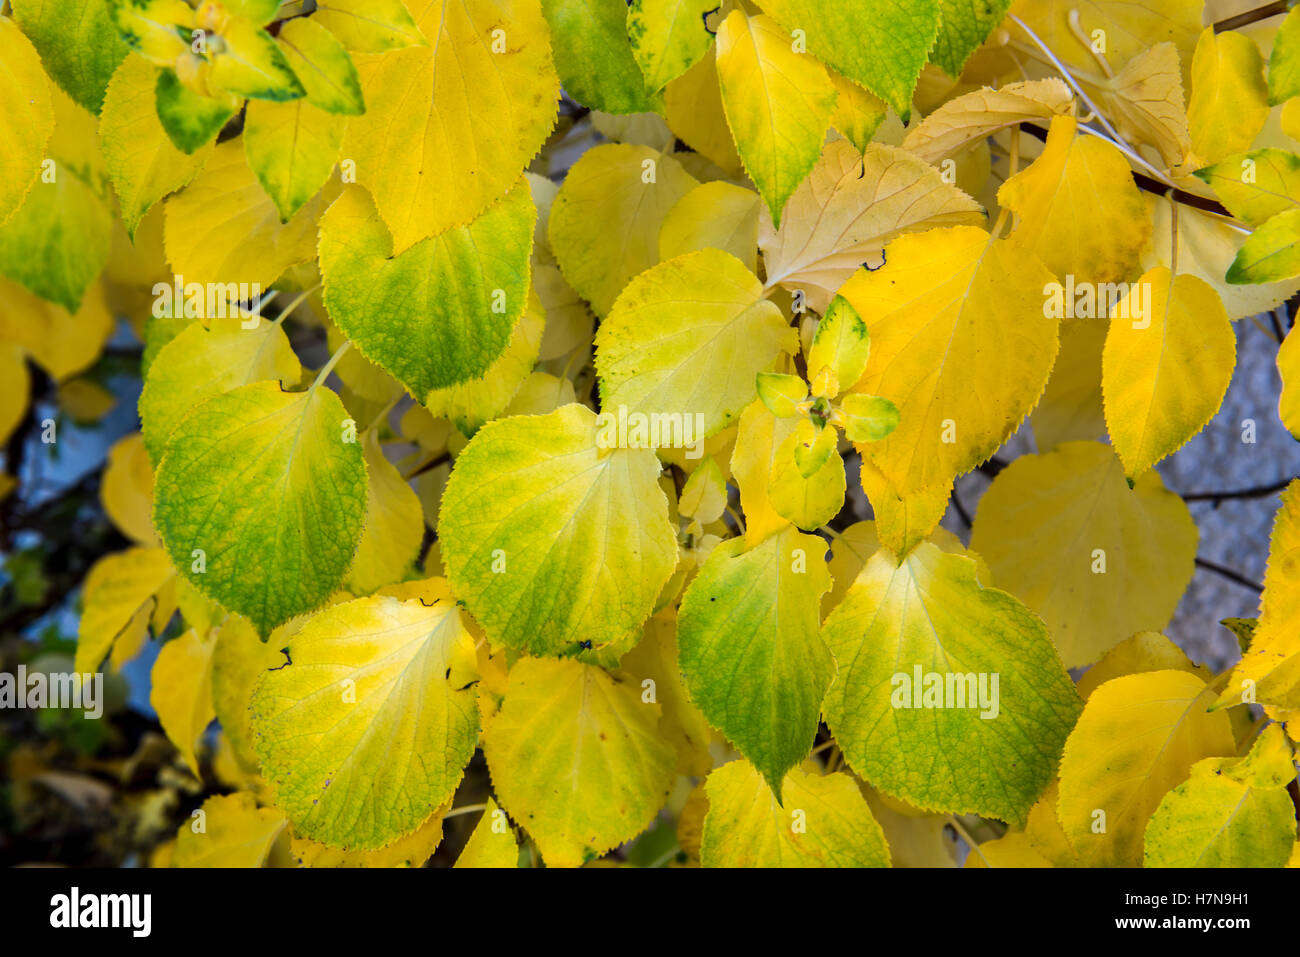 Green And Yellow Vines Stock Photos Green And Yellow Vines Stock